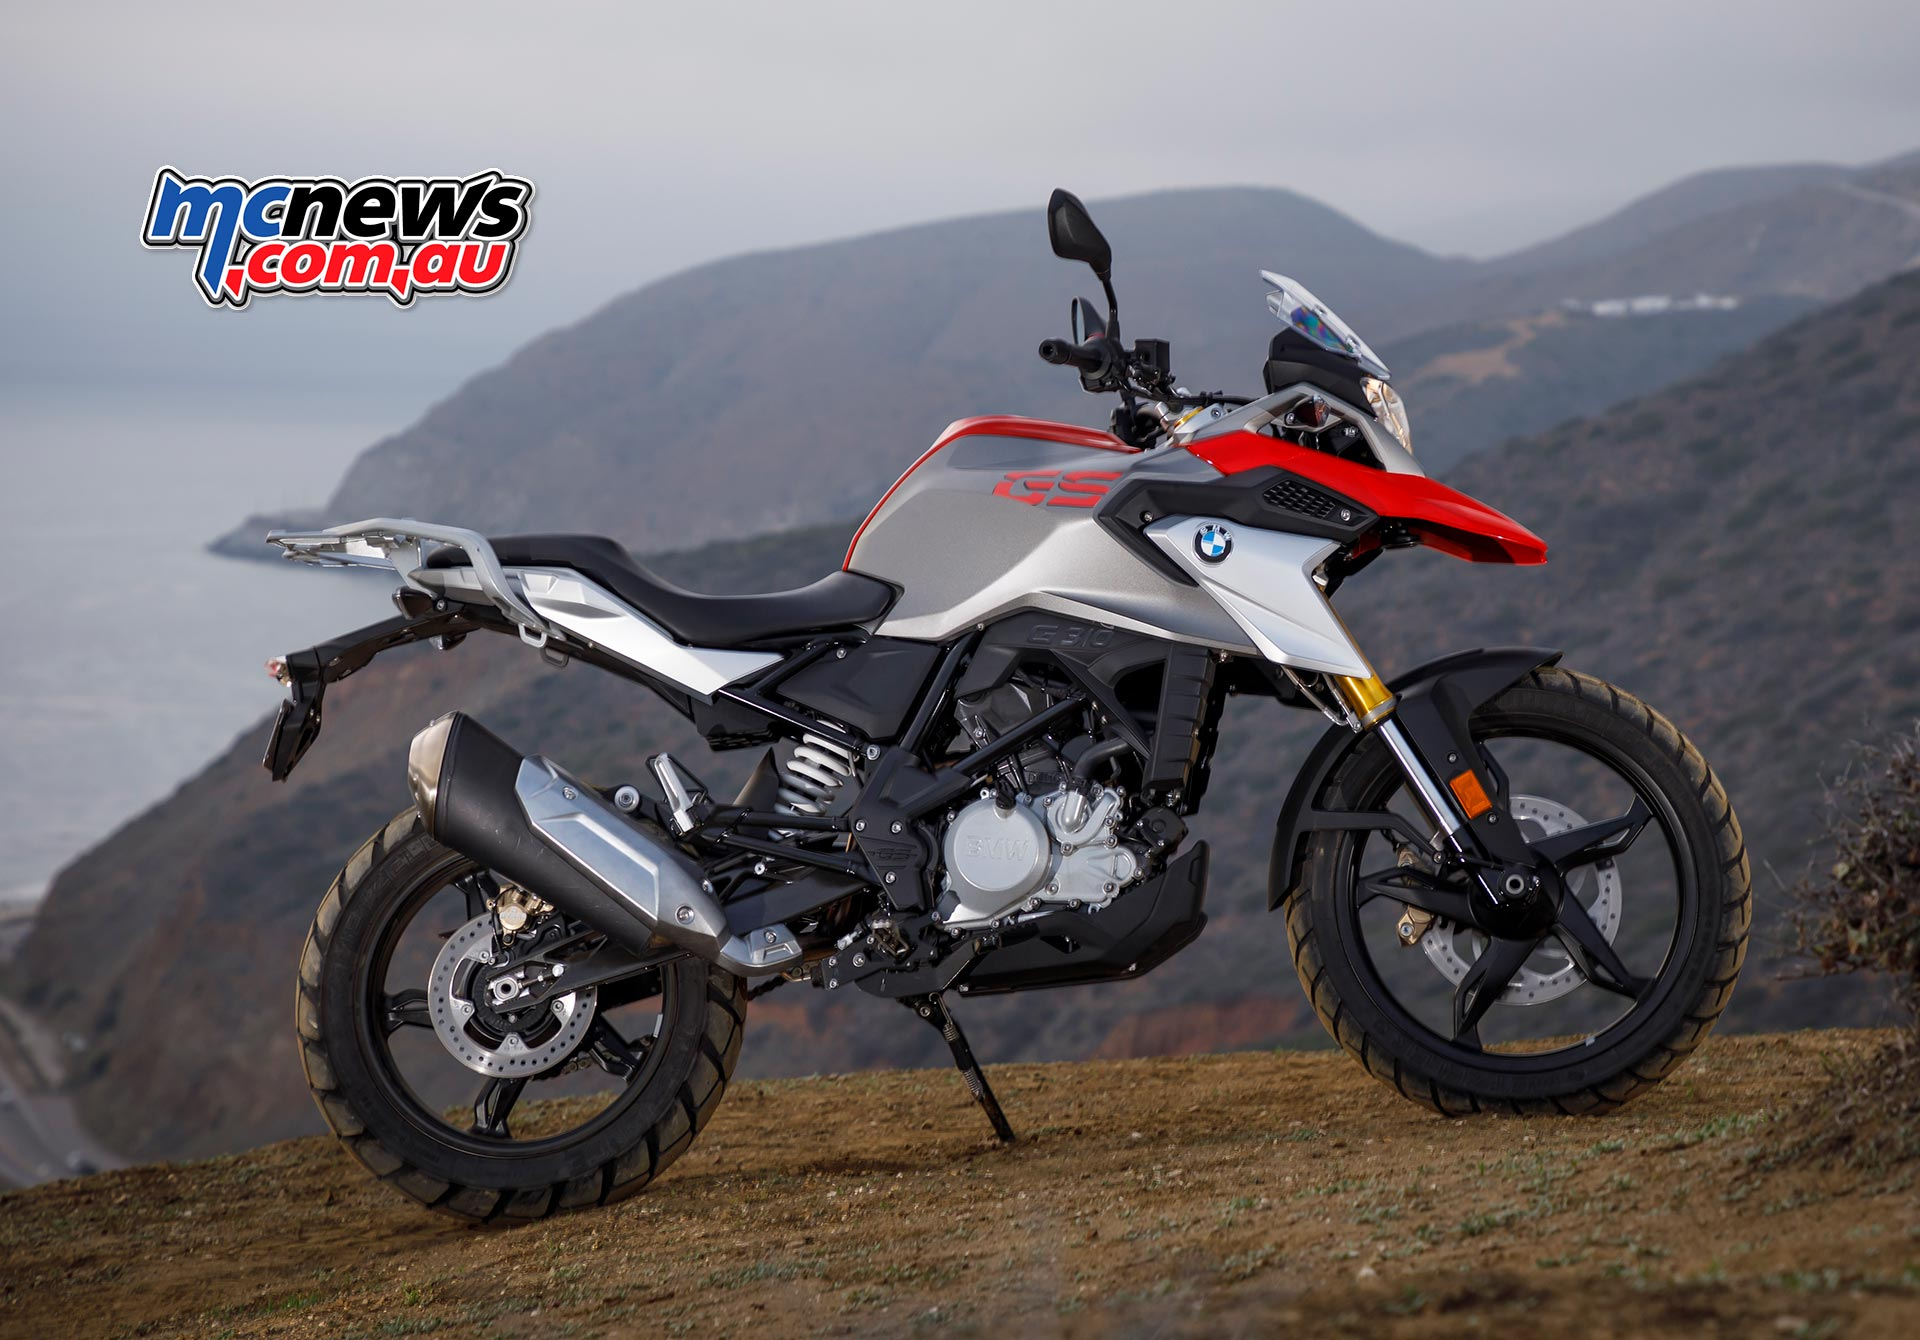 Bmw G 310 Gs To Sell From 6990 Orc Mcnews Com Au